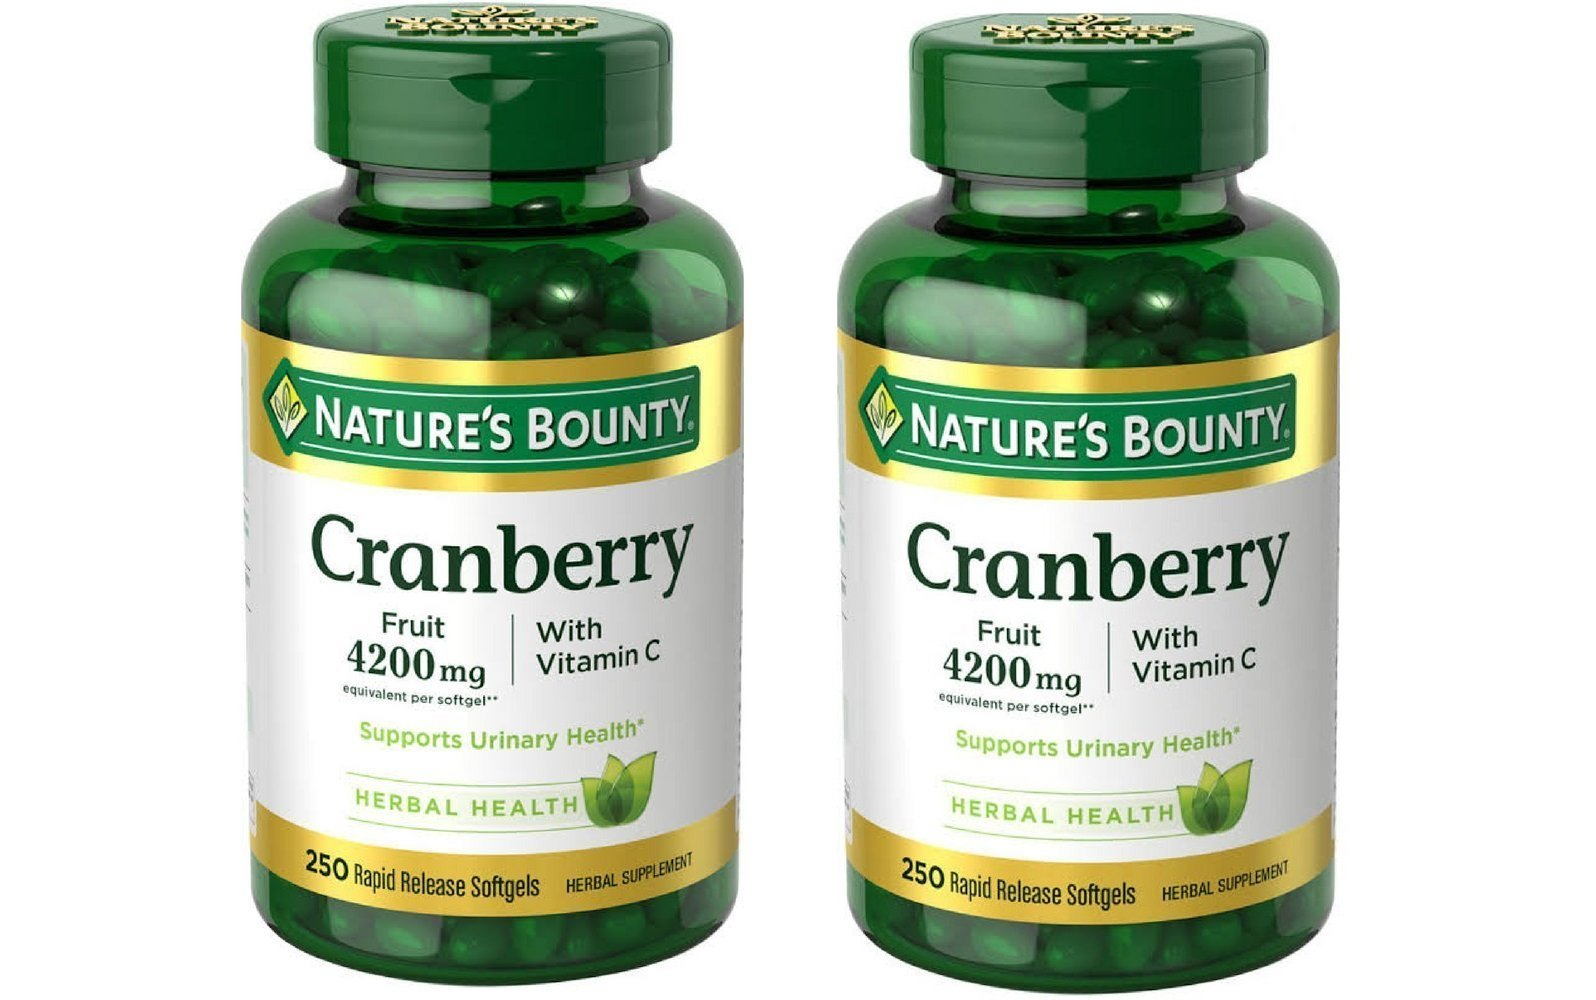 Nature's Bounty Cranberry Fruit 4200mg/ Plus Vitamin C 250 Softgels (2 Pack)